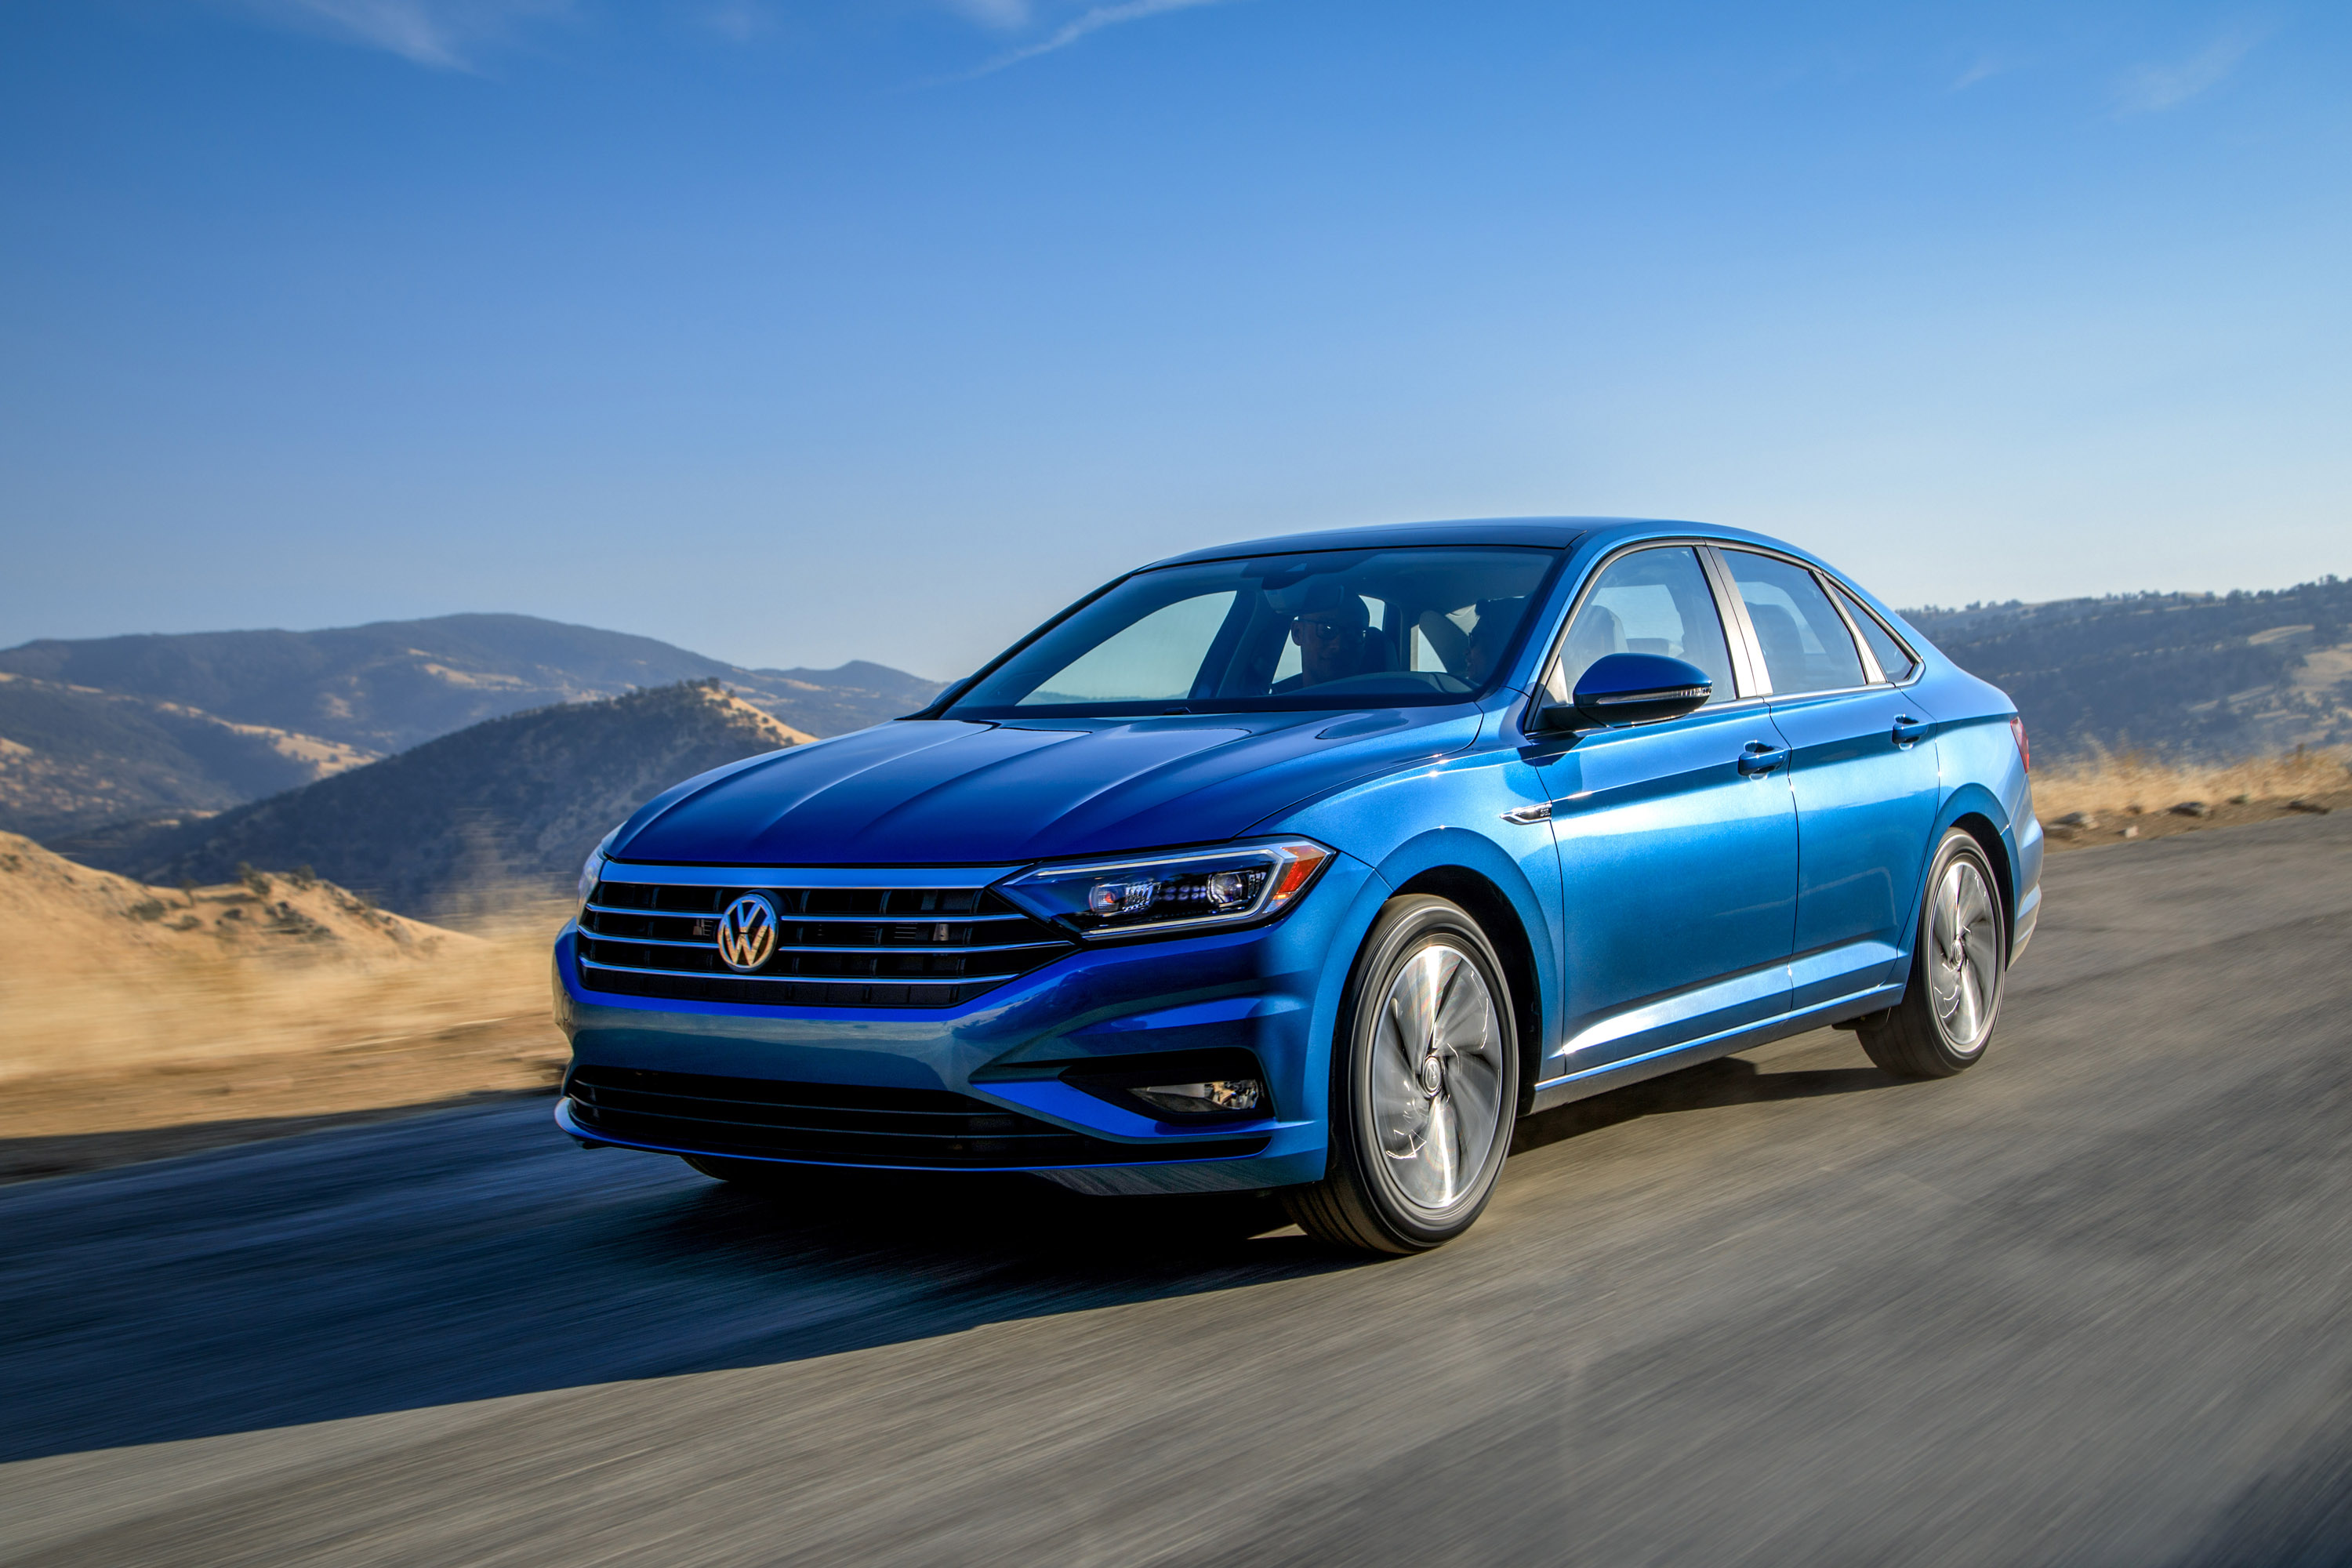 2016 Jetta Gli Review >> Volkswagen presents 2018 Jetta